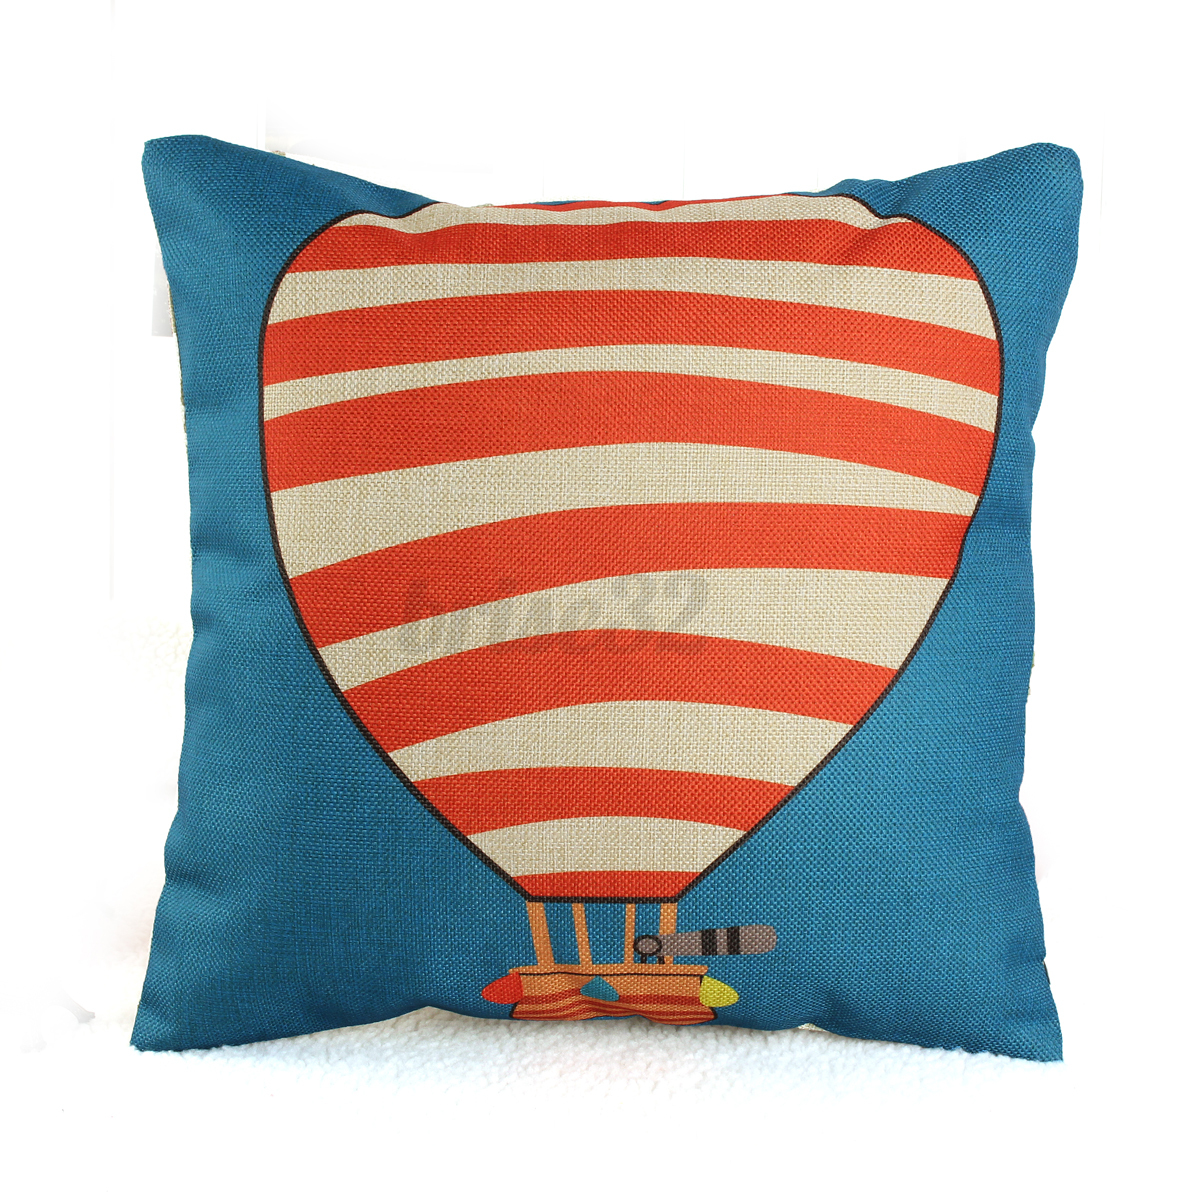 Square Simple Retro Cotton Linen Throw Cushion Covers Pillow Case Home Decor eBay